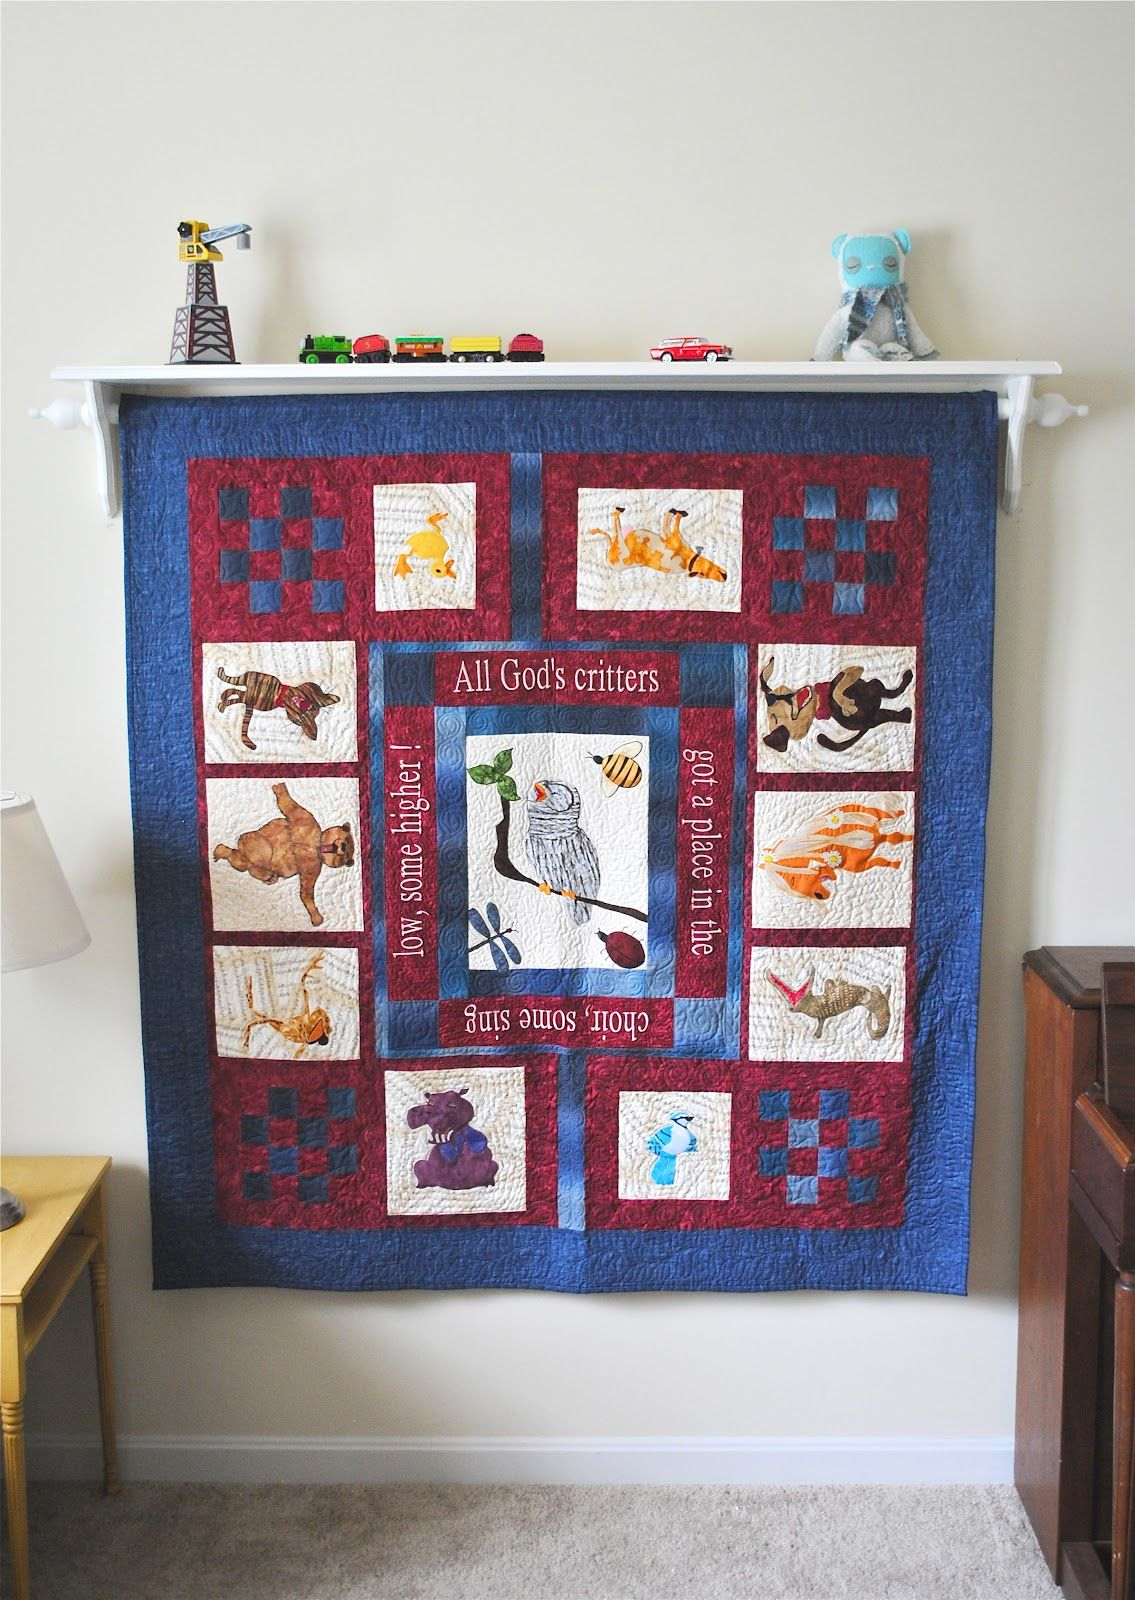 DIY} How to Hang a Quilt | Shelves, Walls and Quilt display : quilts on the wall - Adamdwight.com